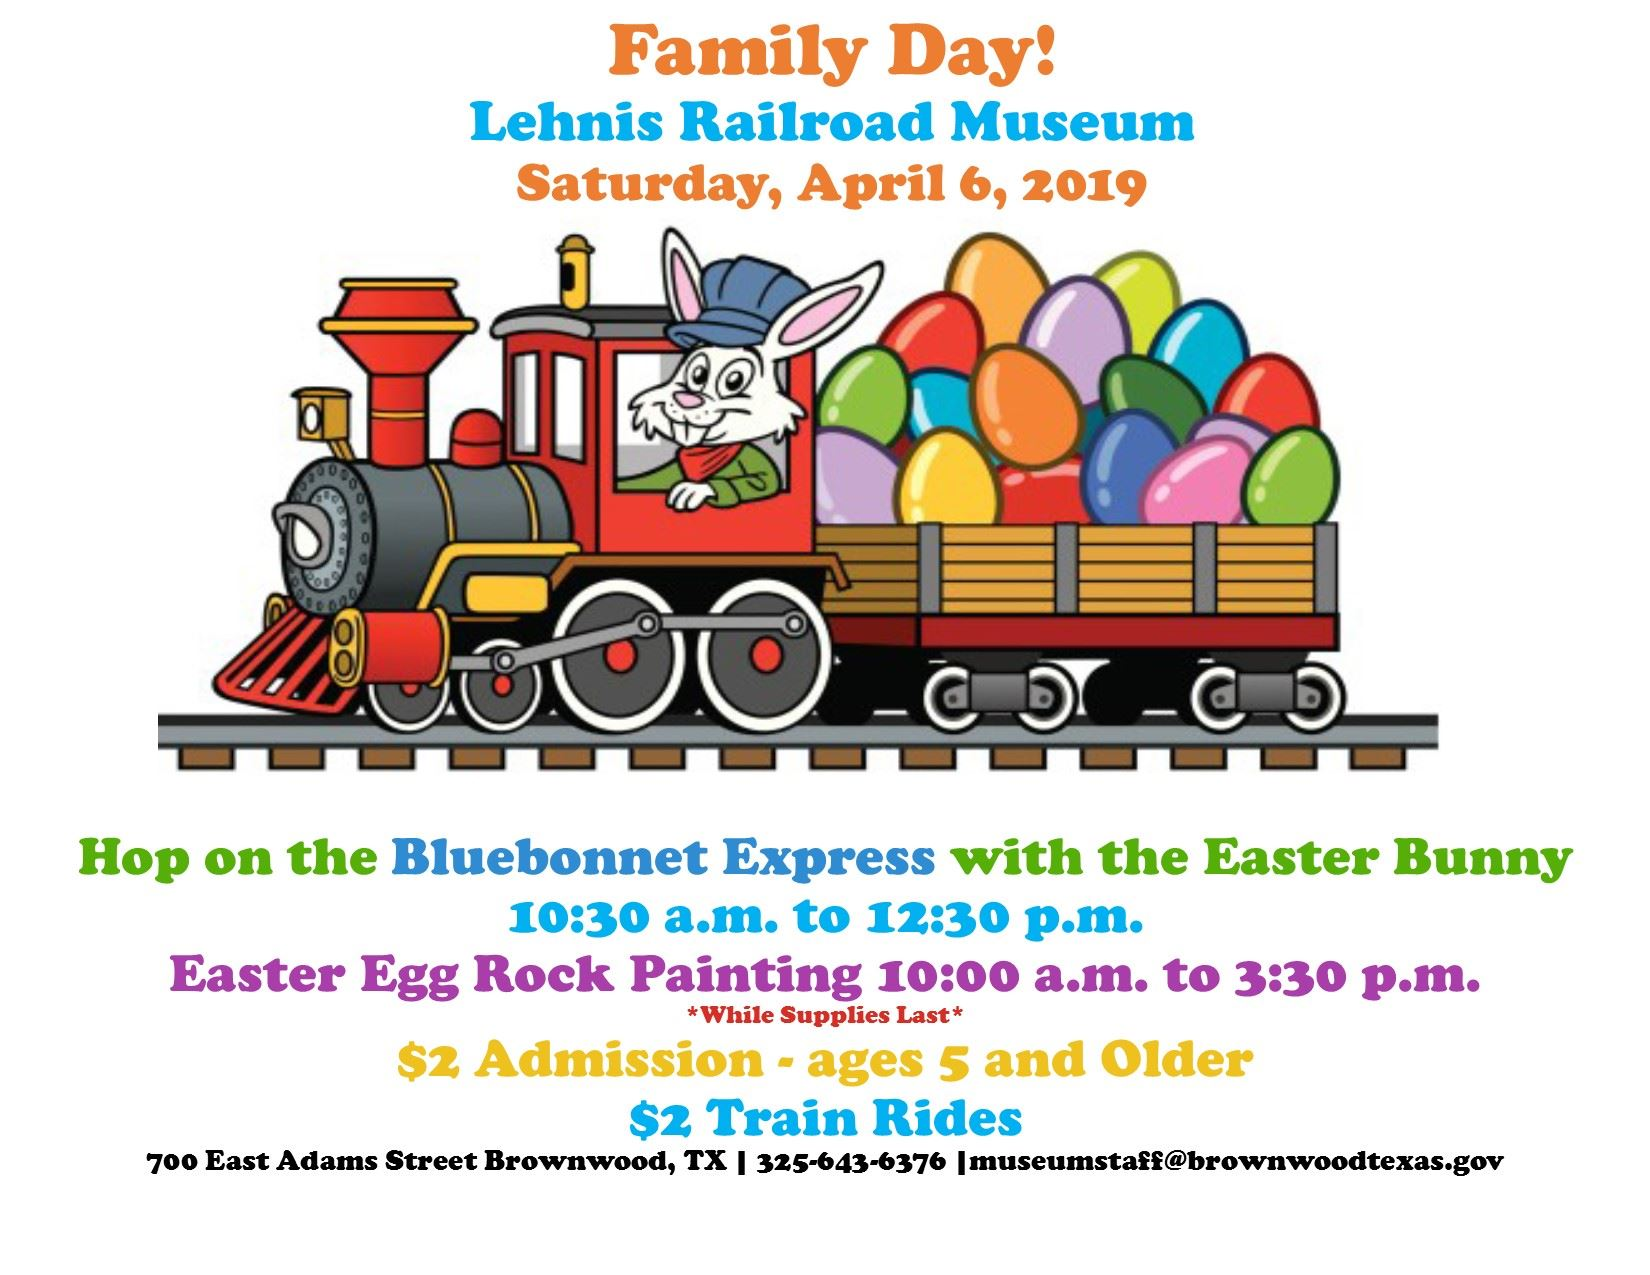 Family Day flyer 4-6-19